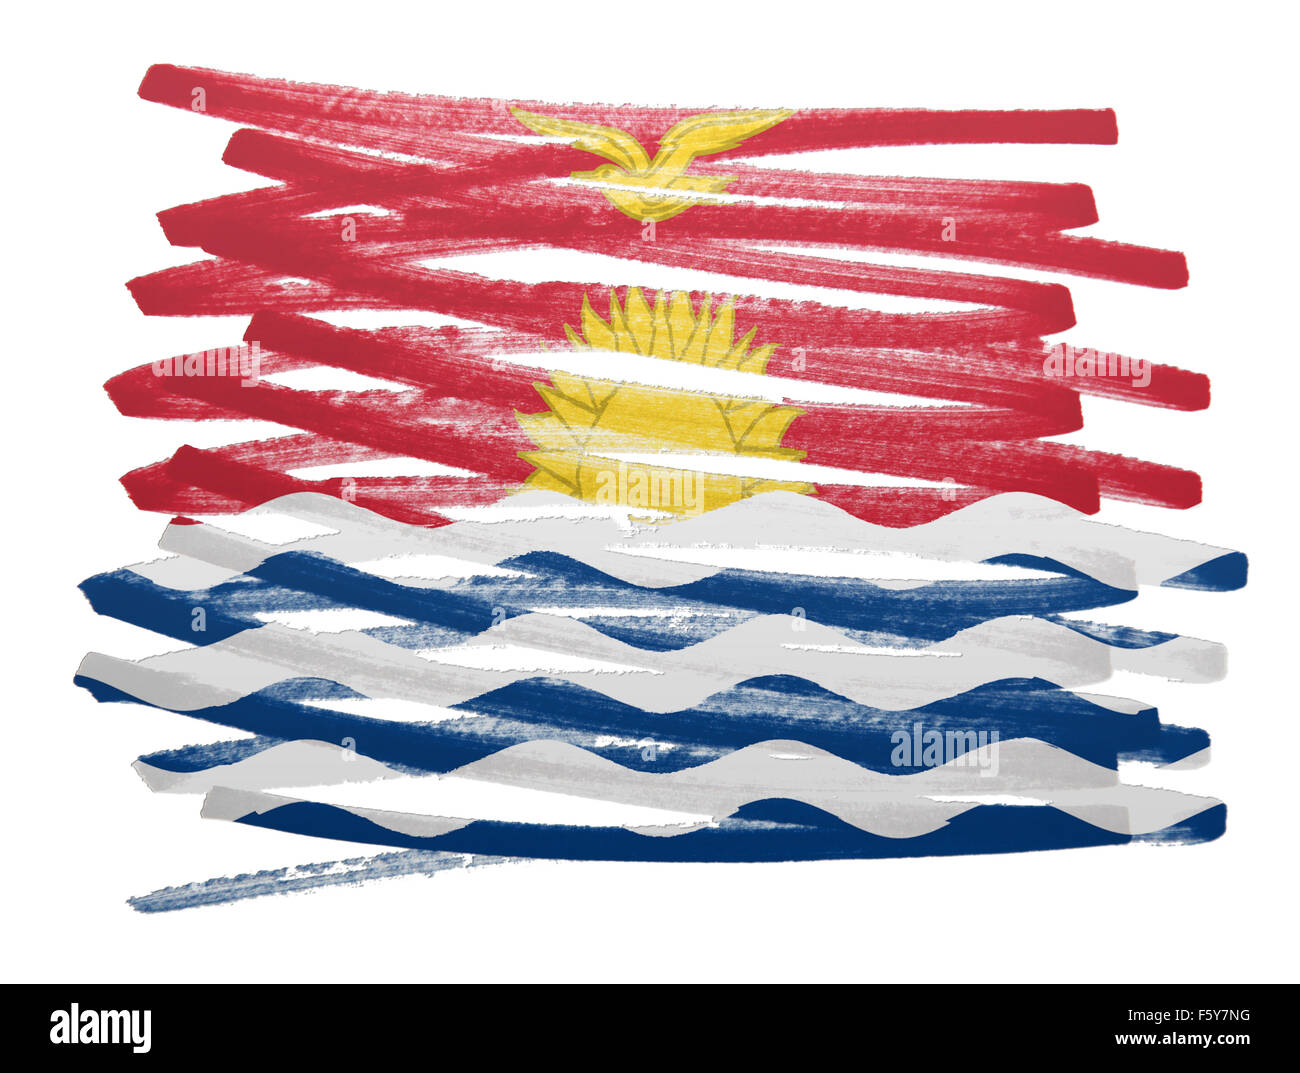 Flag illustration made with pen - Kiribati - Stock Image